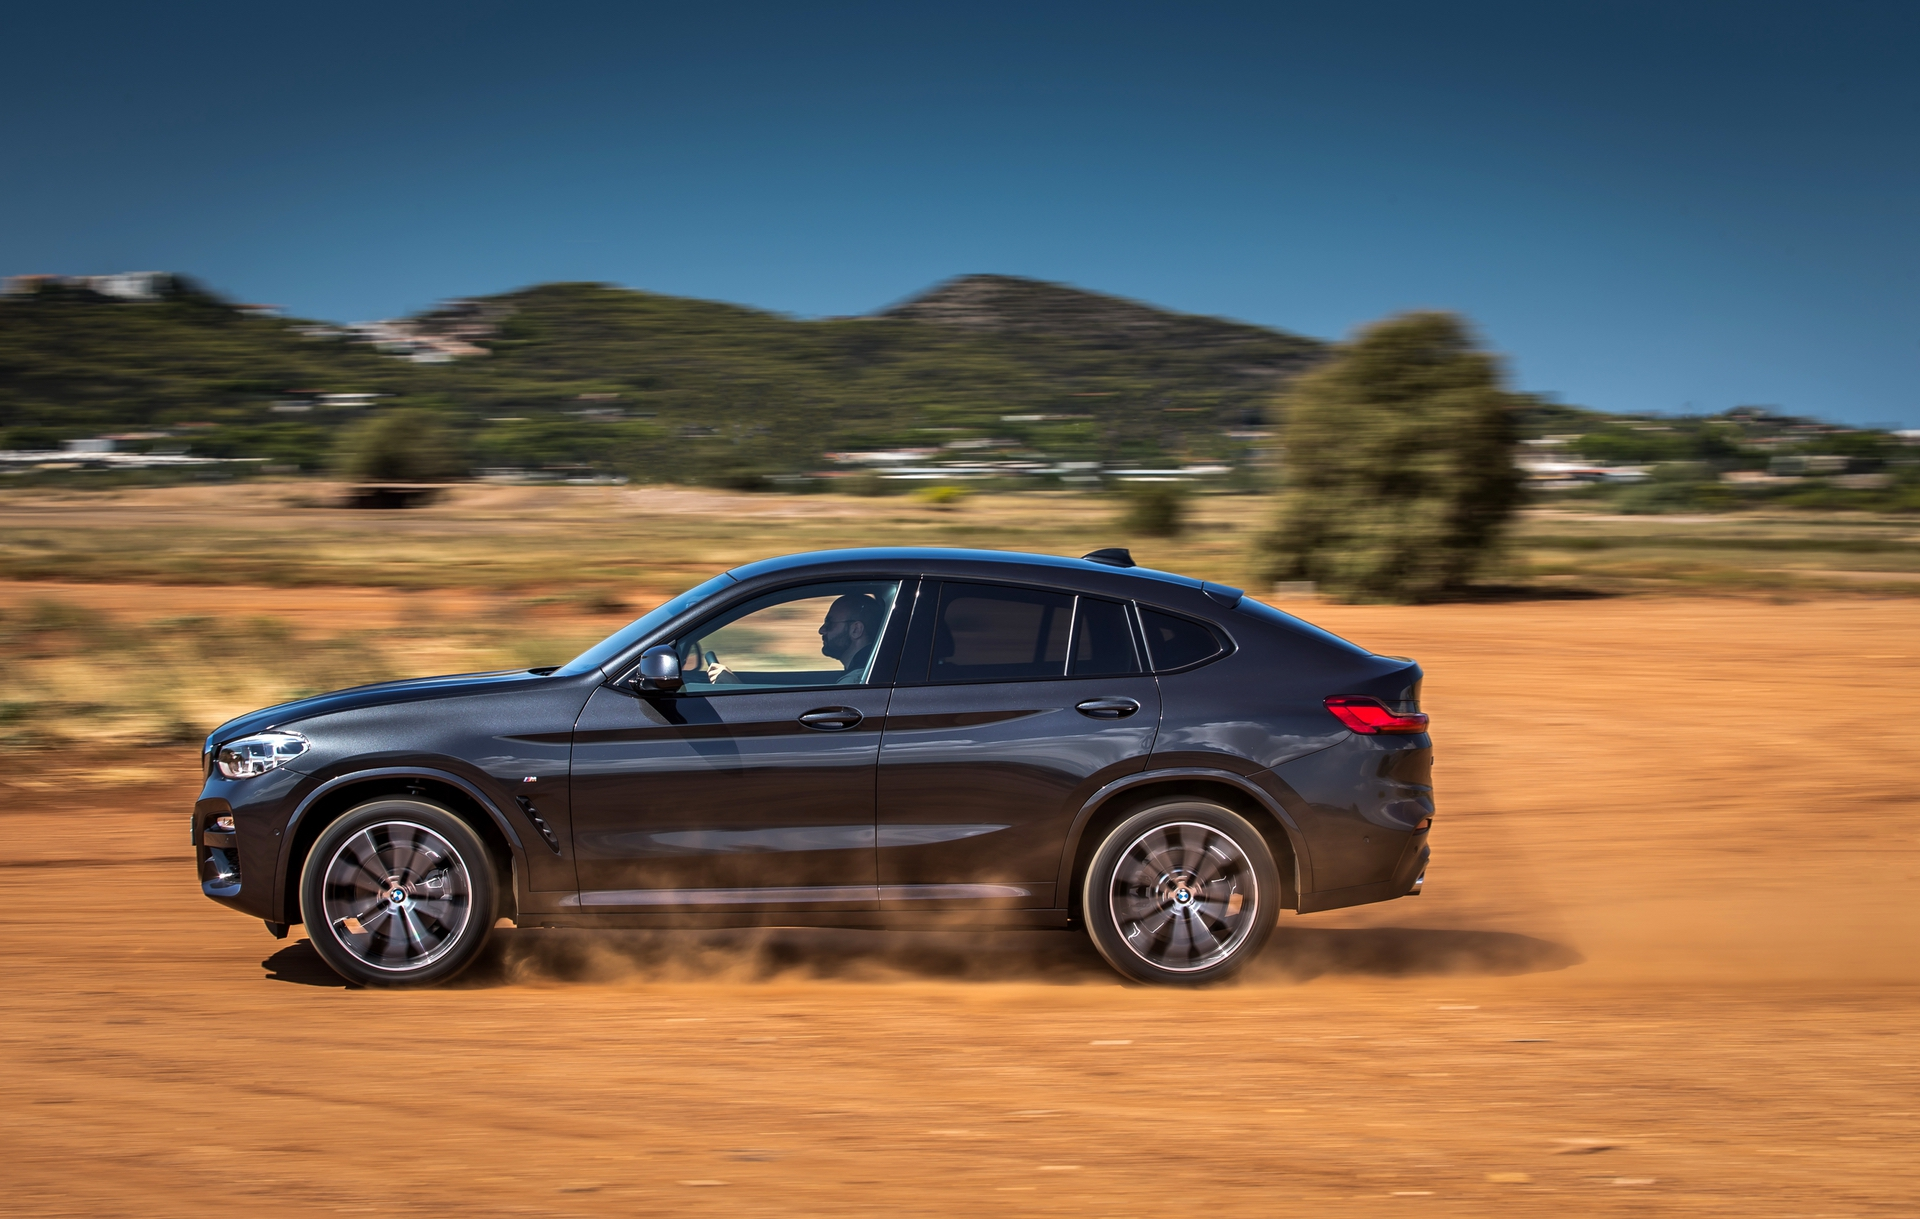 BMW_X4_greek_presskit_0099